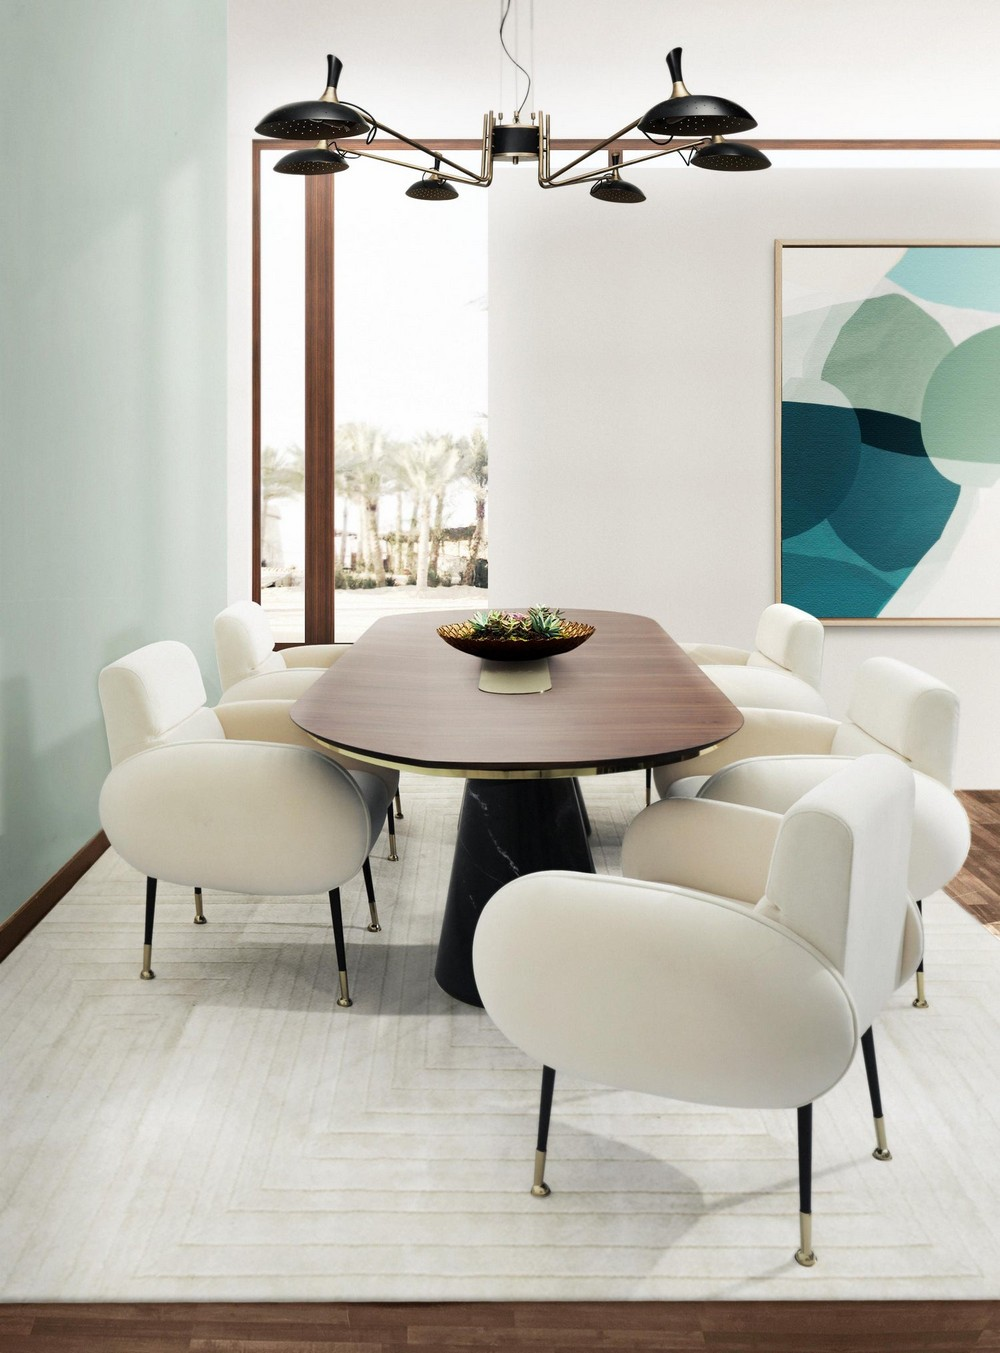 Retro Vibe Mid-century: The Dining Chairs dining chairs Retro Vibe Mid-century: The Dining Chairs marco2